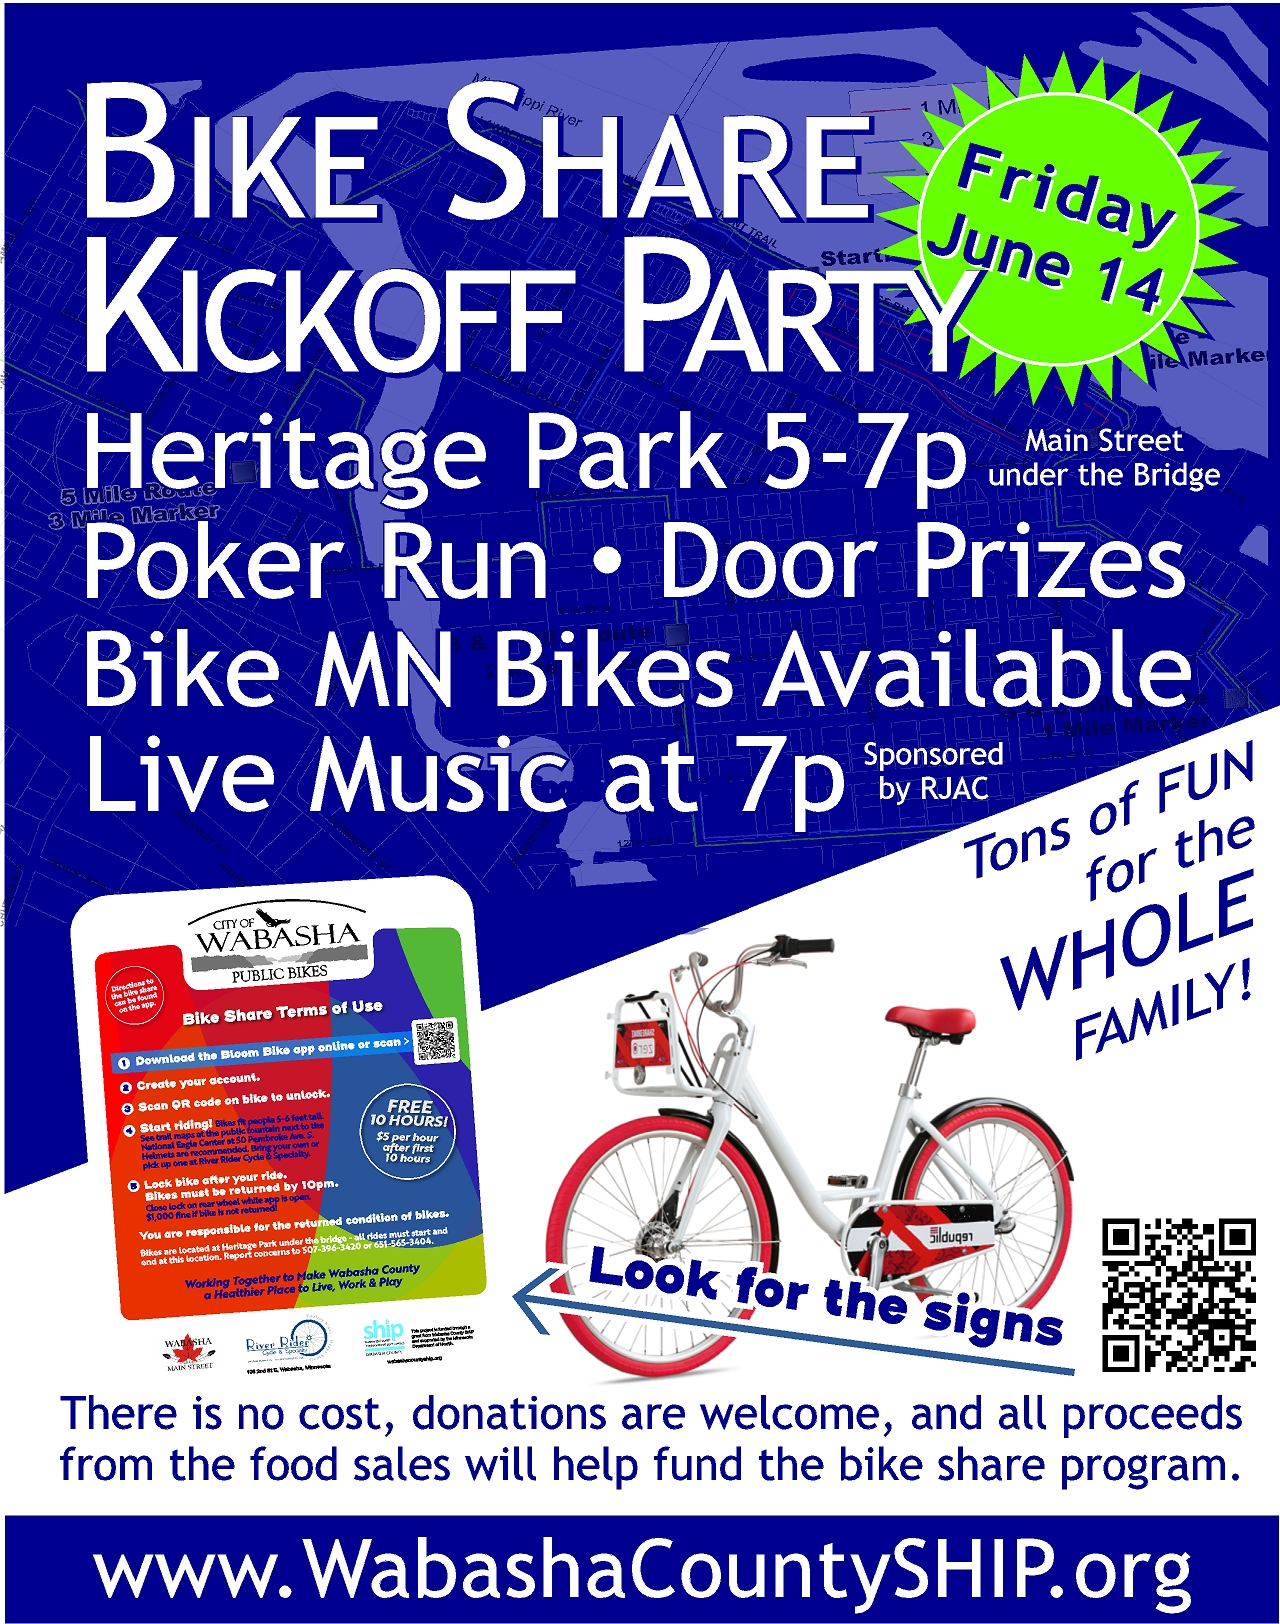 052019 Bike share kickoff flyer.jpg